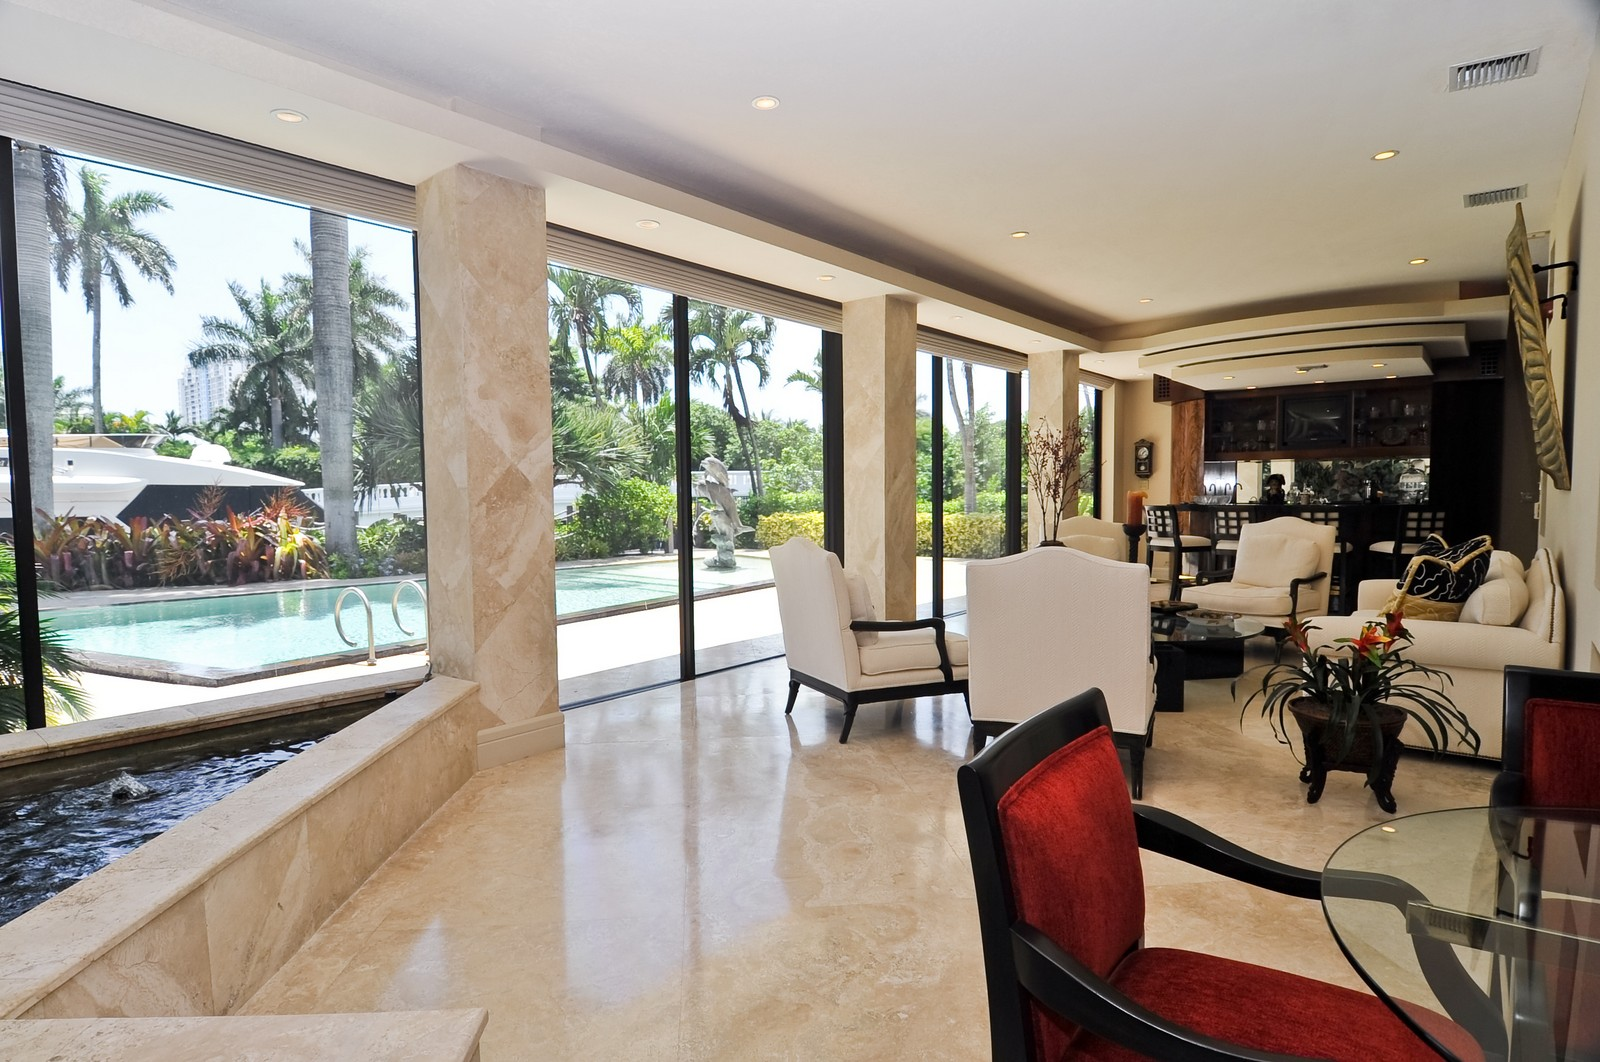 Real Estate Photography - 1510 W 23rd St, Miami Beach, FL, 33140 - Family Room